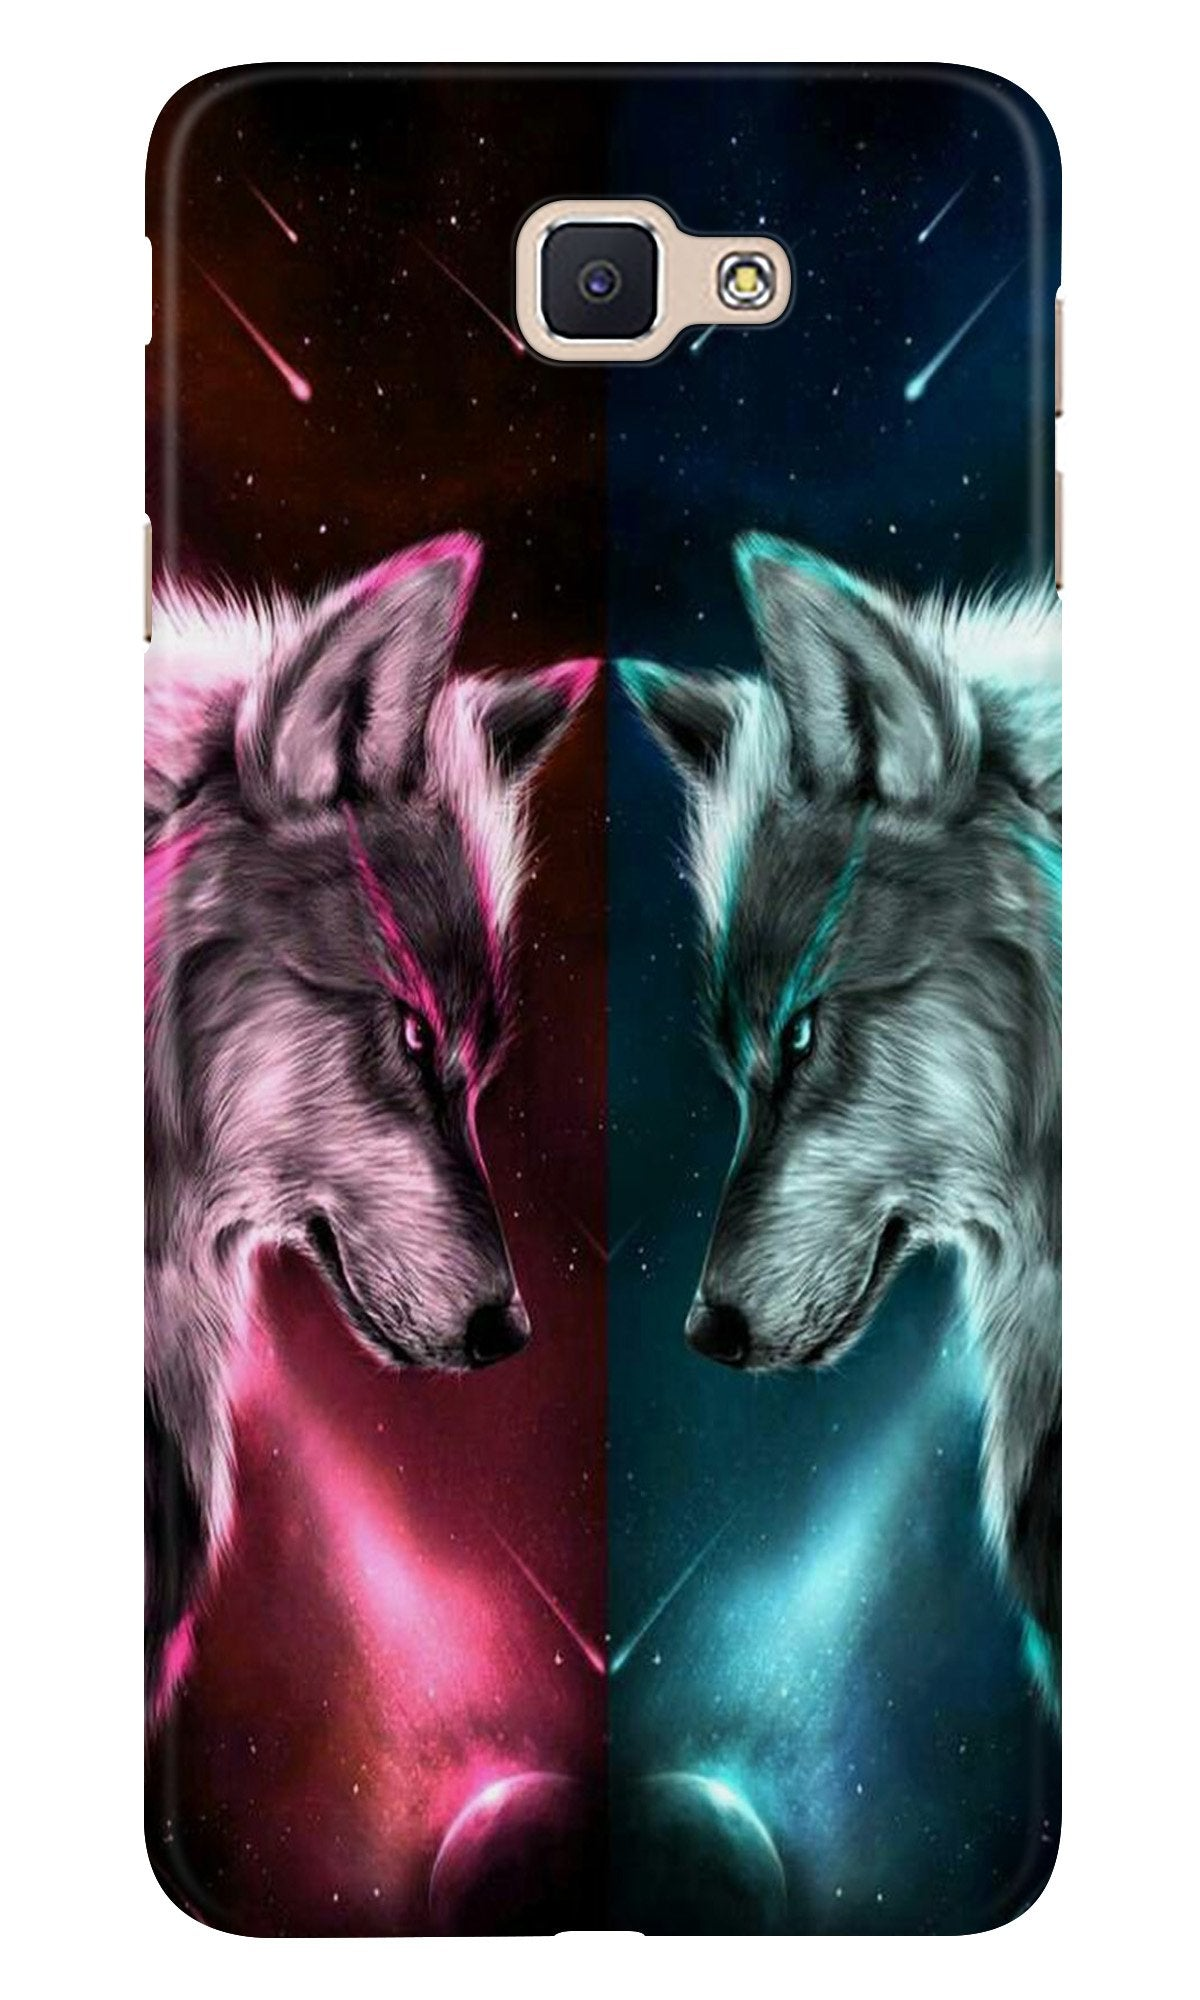 Wolf fight Case for Samsung Galaxy C7 Pro (Design No. 221)